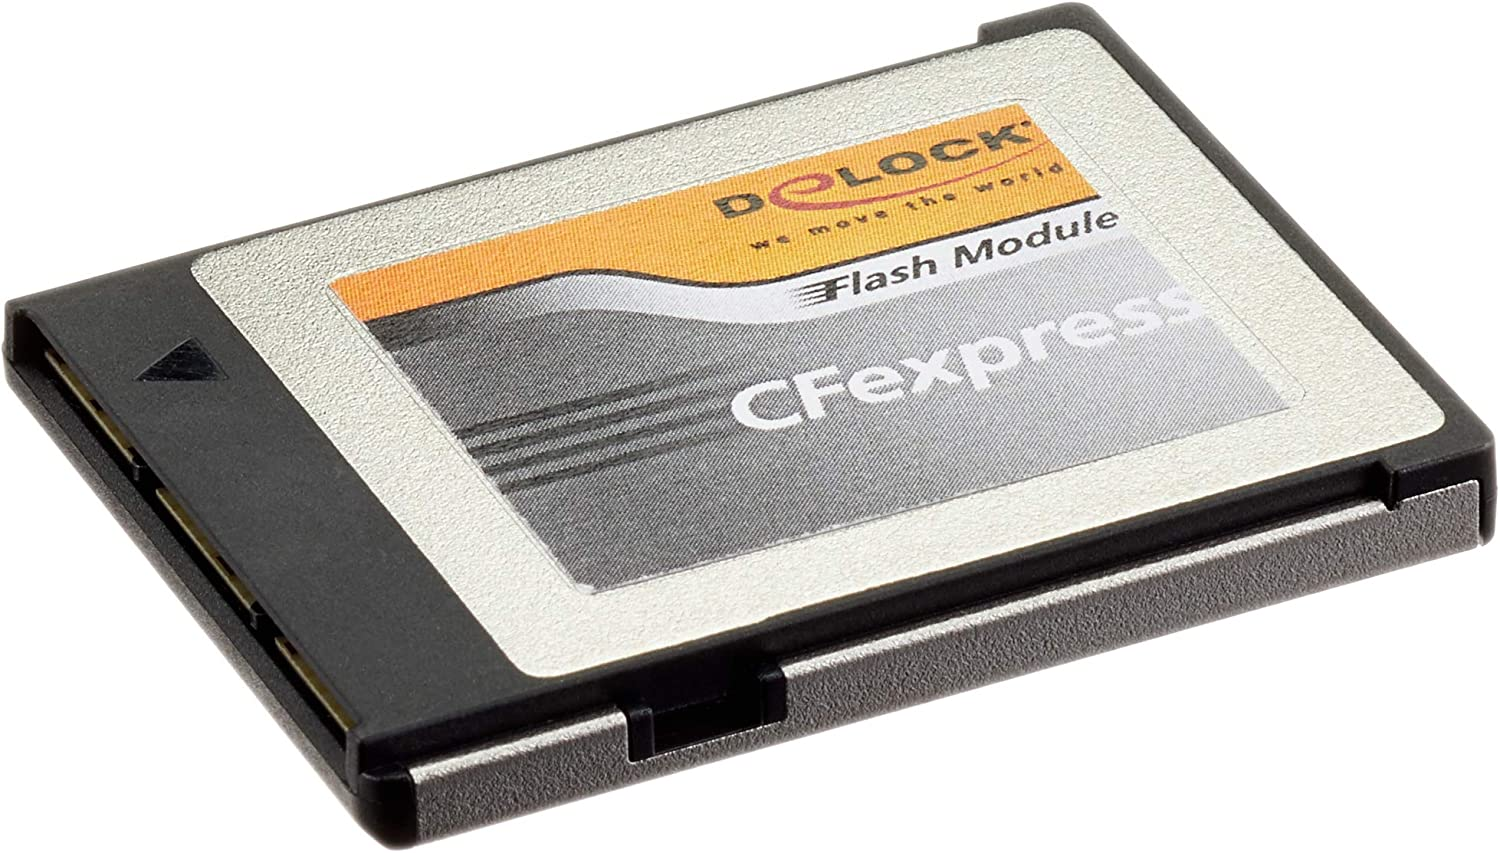 Delock Cfexpress Memory Card 128 Gb Computers Accessories